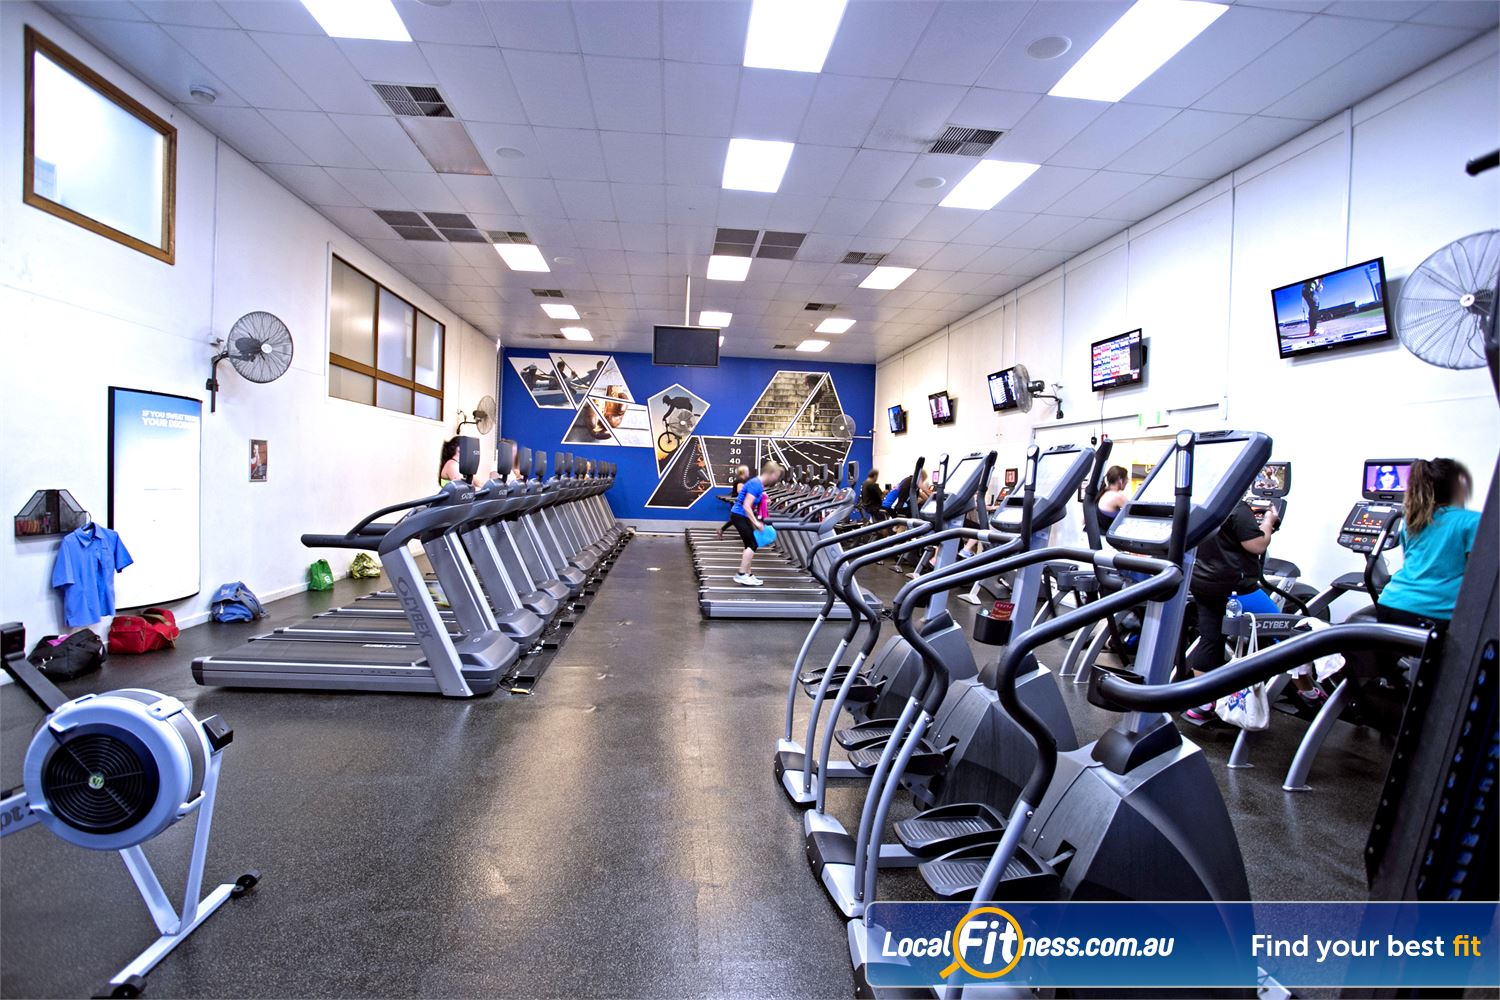 Goodlife Health Clubs Mitcham Near Netherby Vary your cardio with plenty of different machines to choose from to keep things interesting.